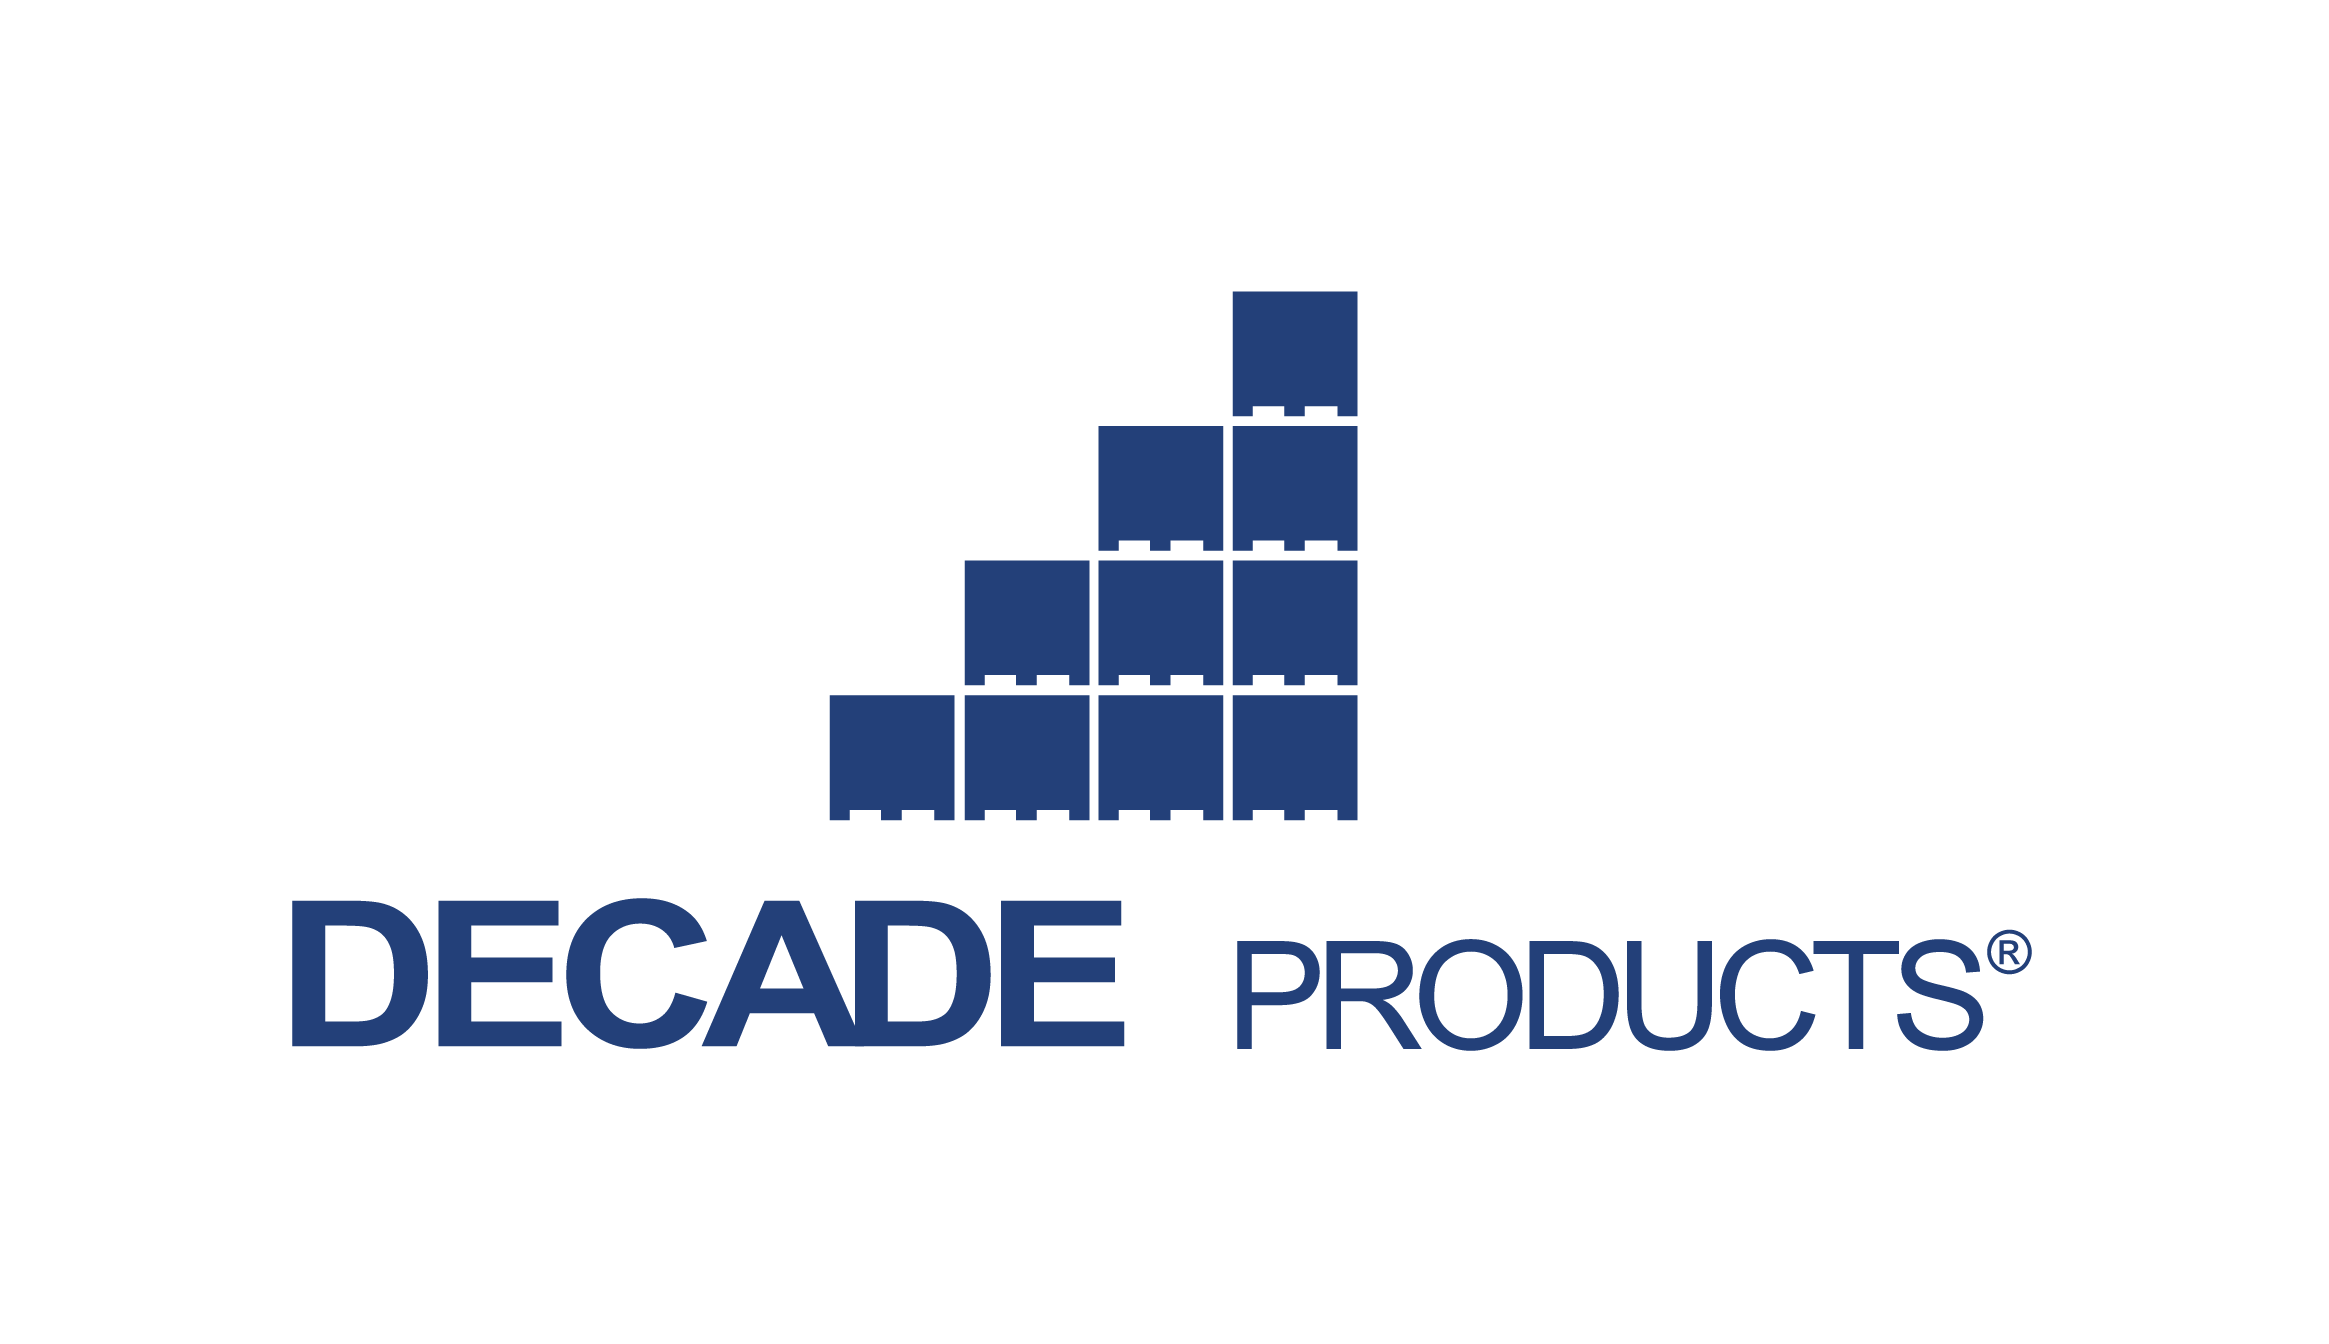 Decade Products